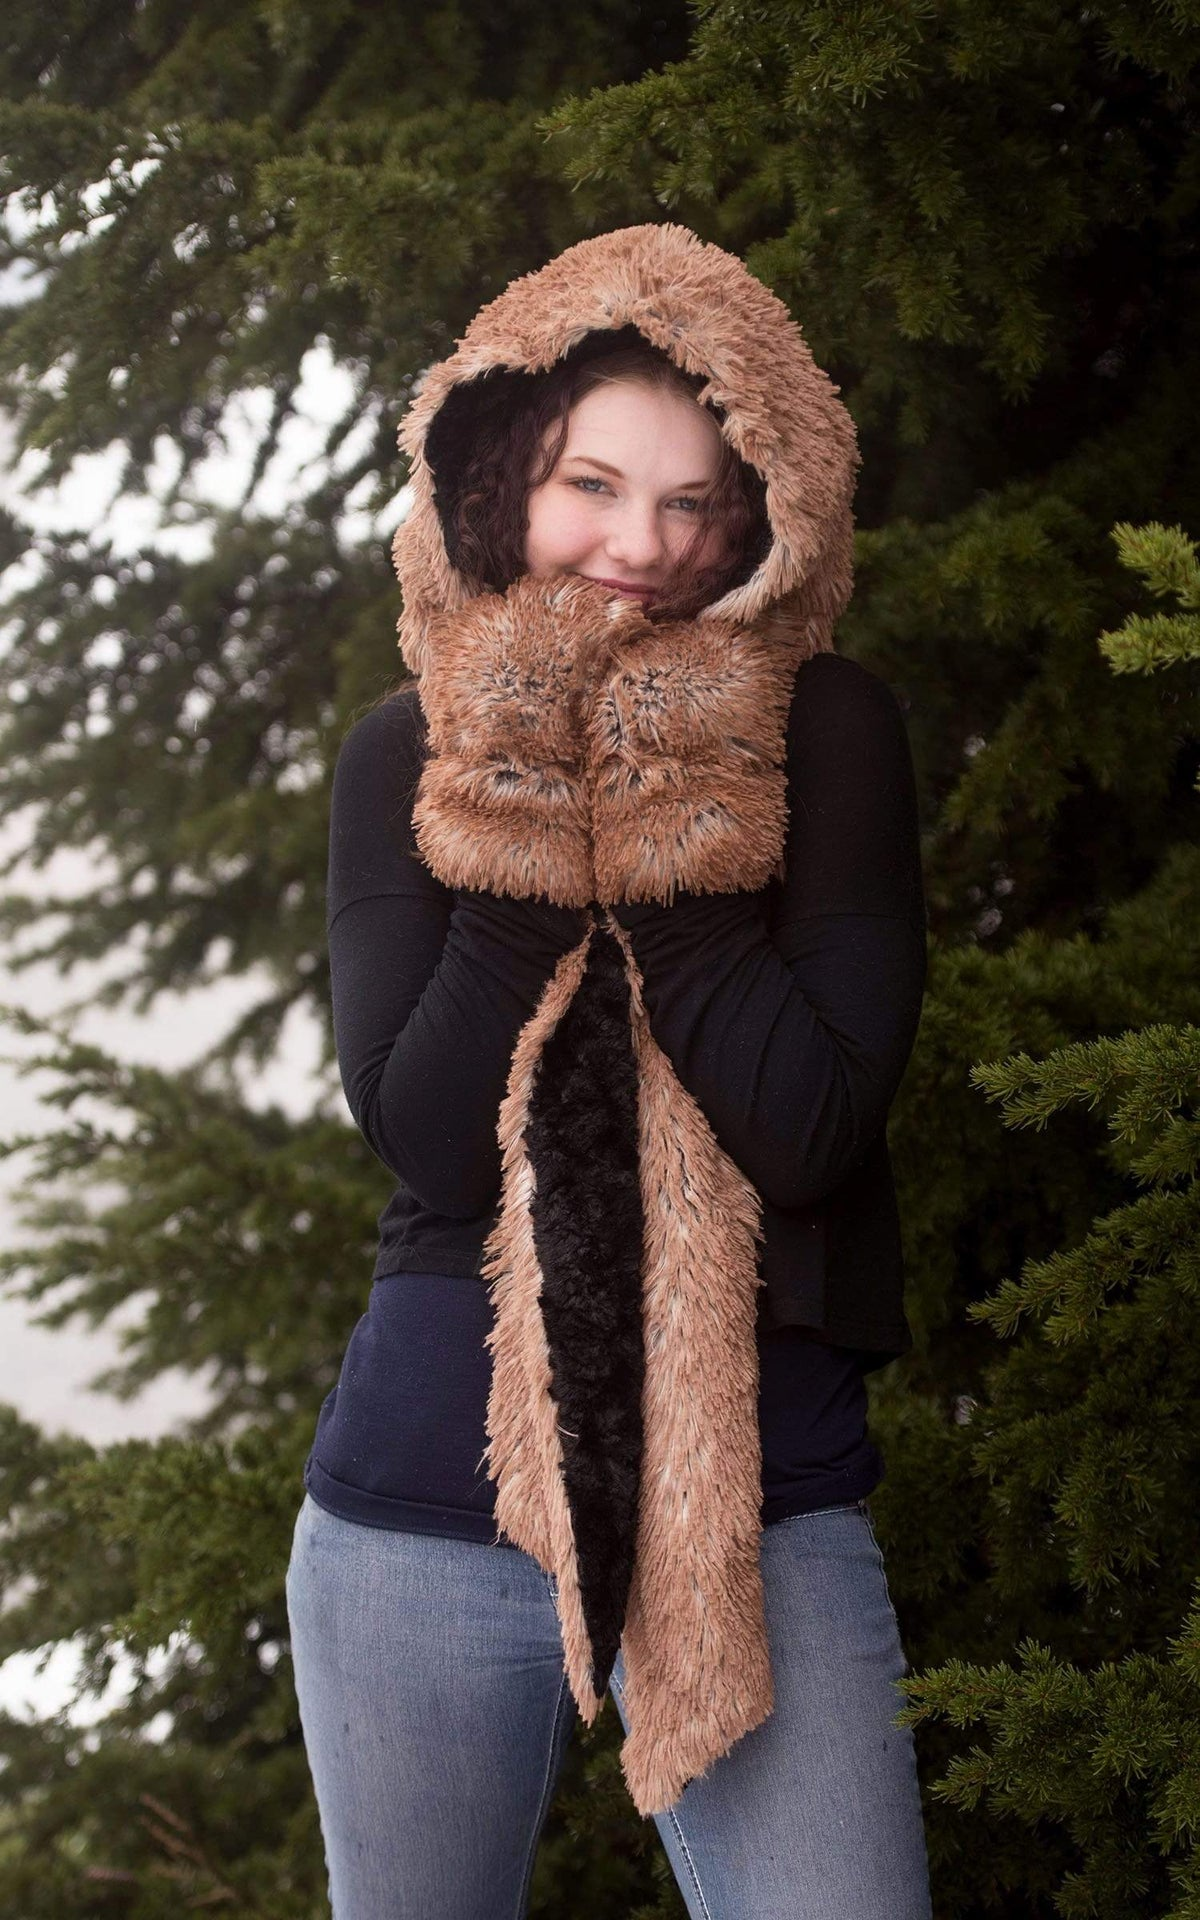 Pandemonium Millinery Hoody Scarf - Fox Faux Fur with Cuddly Fur Scarves